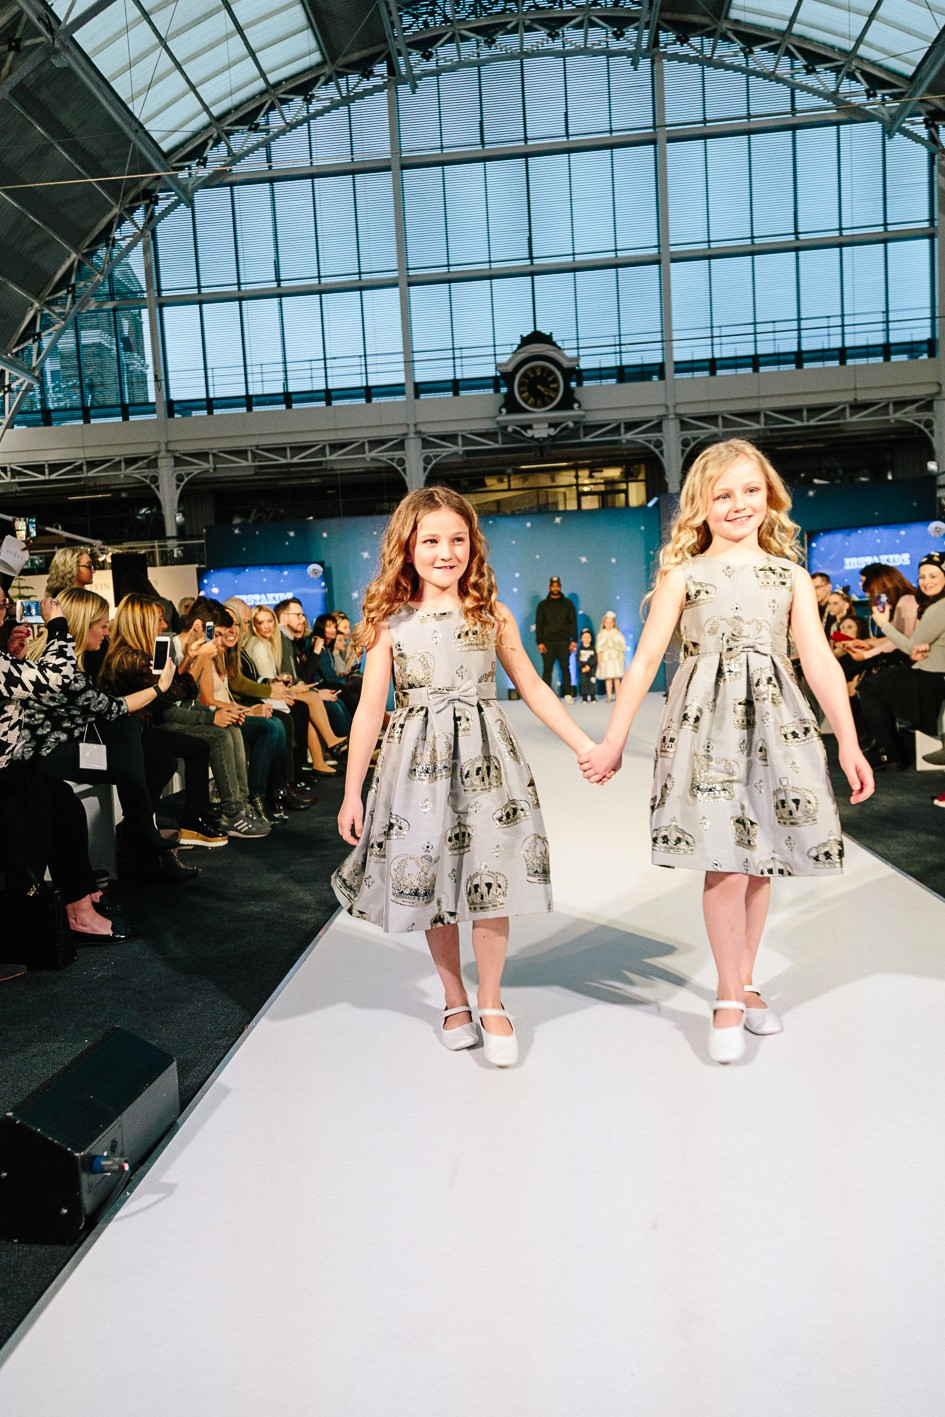 Fleur Isted (walking with here friend India) both wearing Rachel Riley